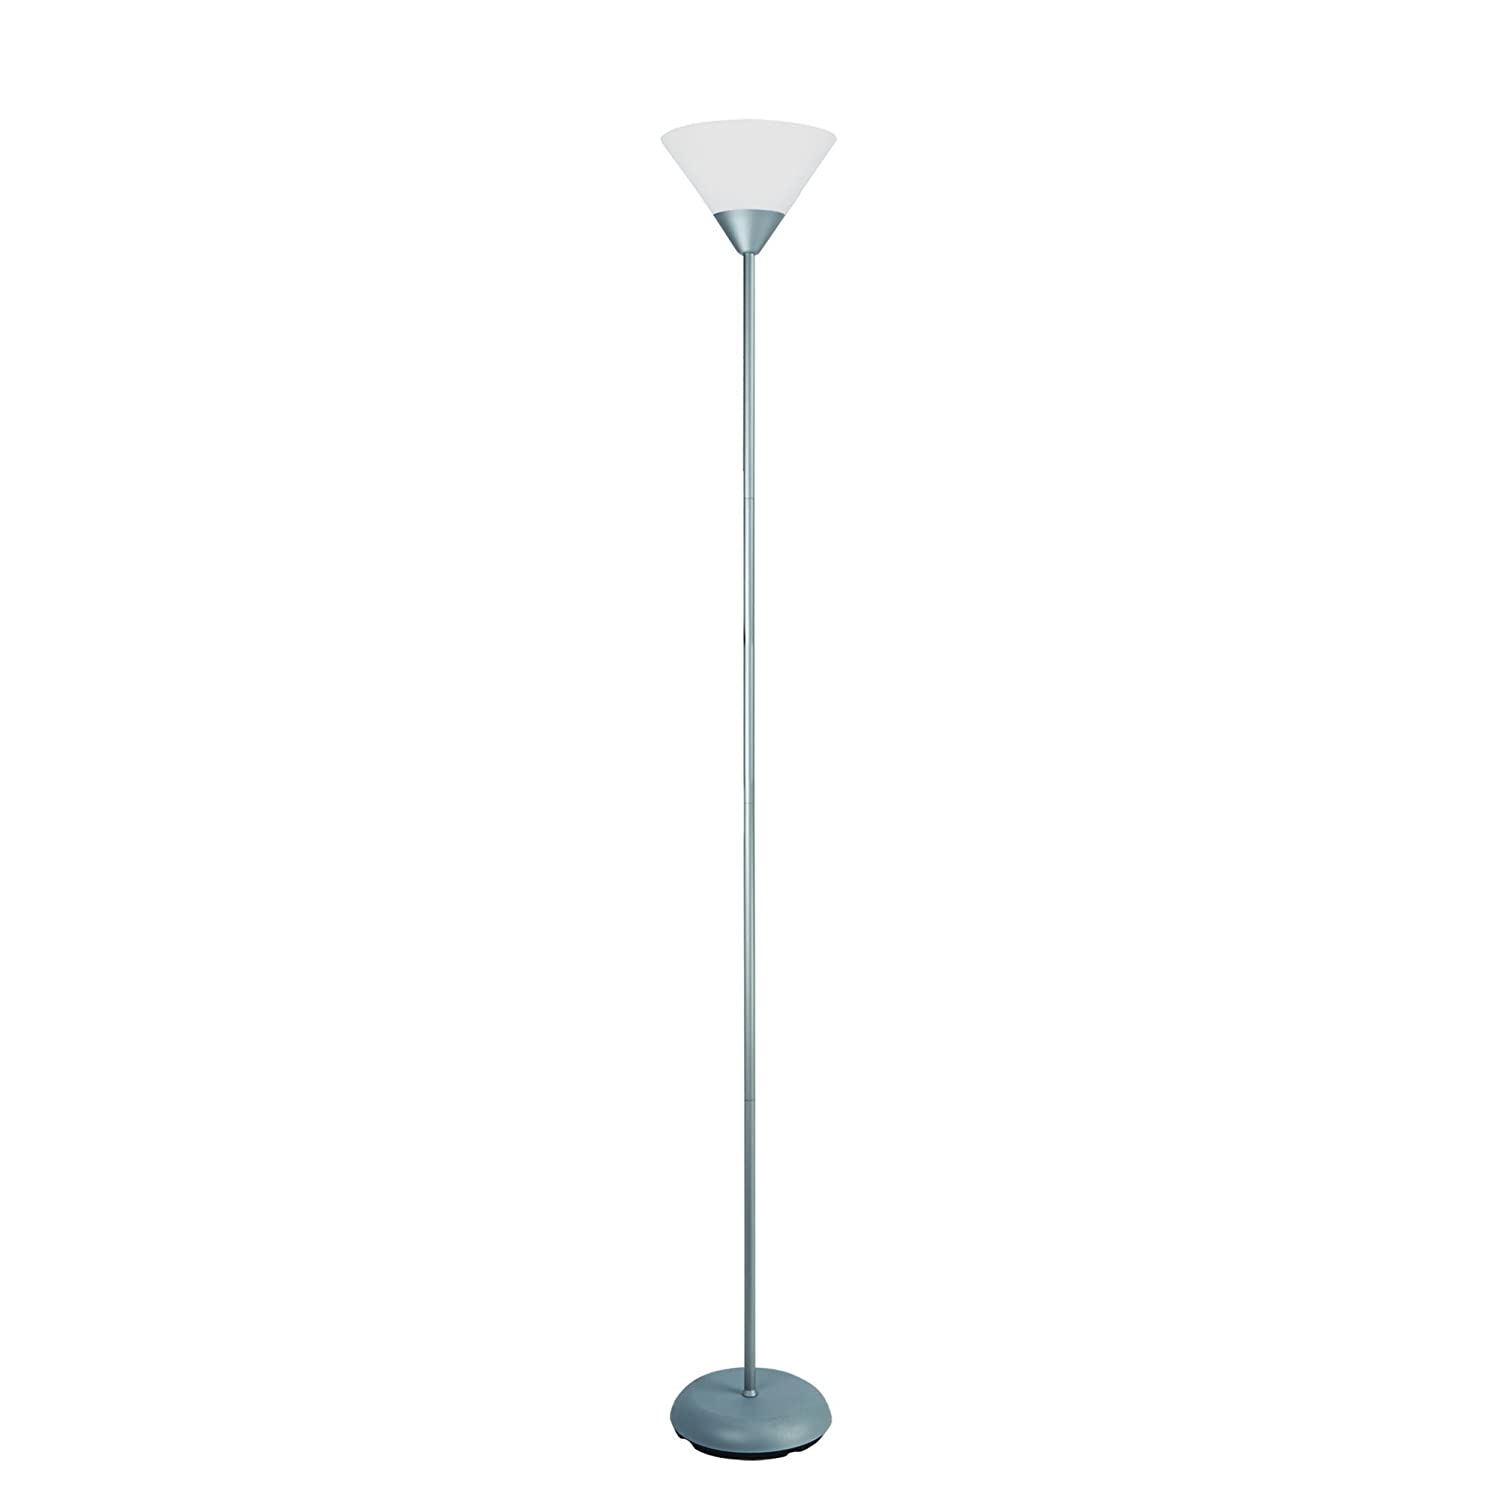 """Simple Designs Home LF1011-SLV 1 Light Stick Torchiere Floor Lamp, 8.67"""" x 8.67"""" x 71"""", Silver"""